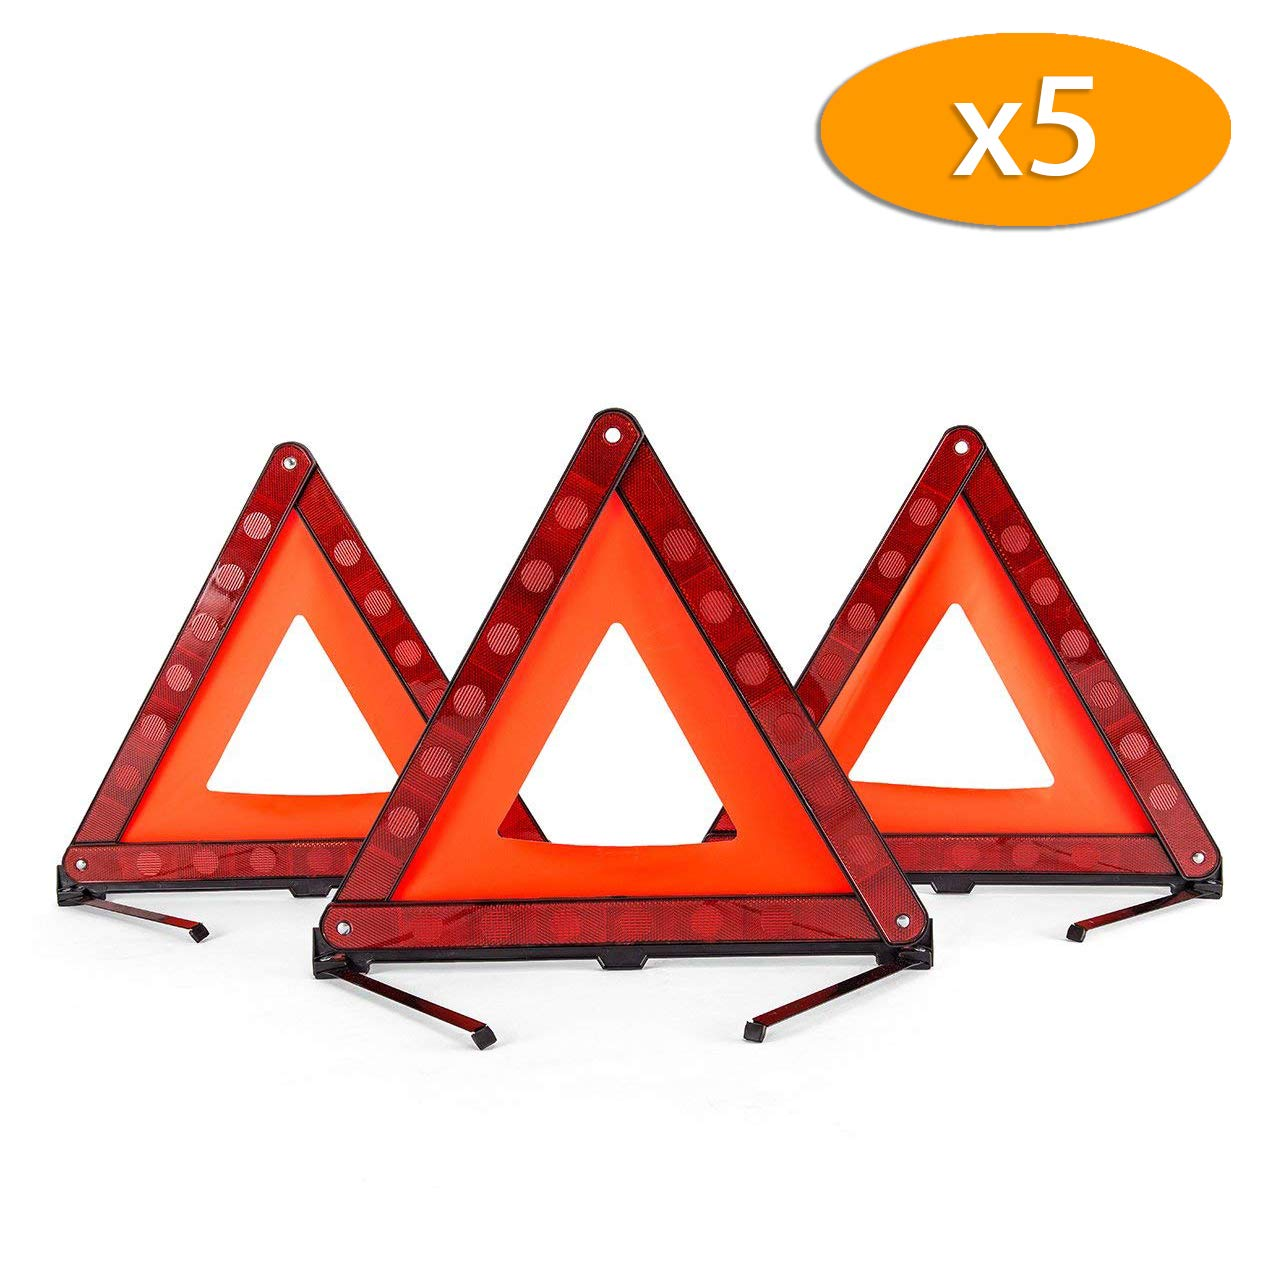 DEDC Warning Triangle Foldable Safety Triangle Triple Warning Kit Warning Triangle Reflector Roadside Hazard Sign Triangle Symbol for Emergency with Storage Bag (15 Pack)